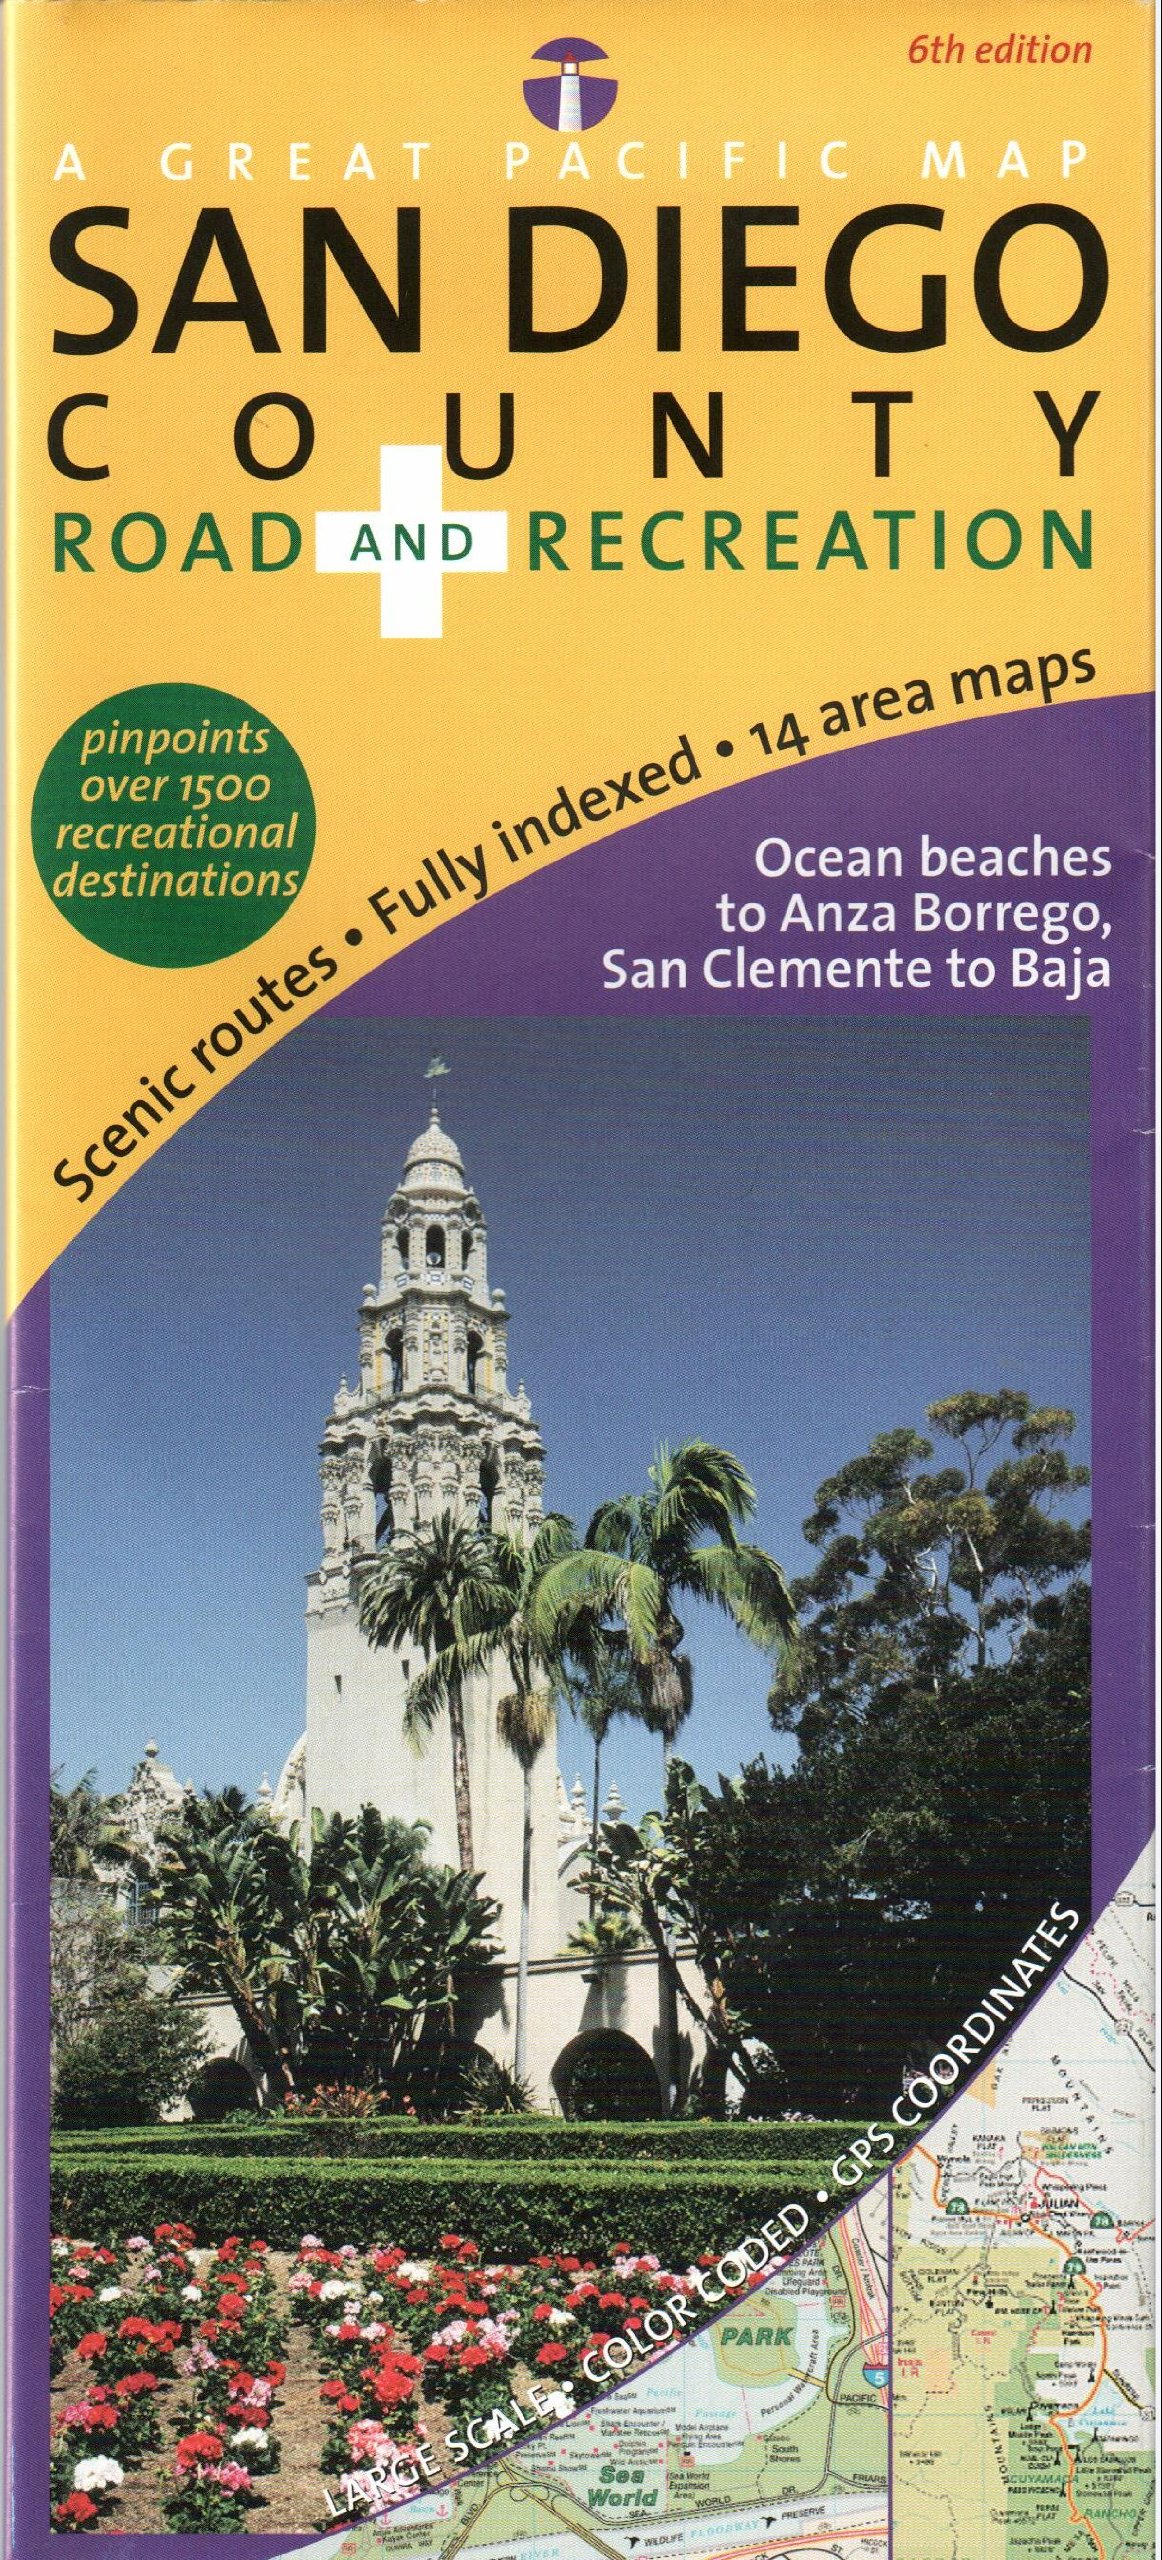 San Diego County Road Recreation Map 6th Edition David J R